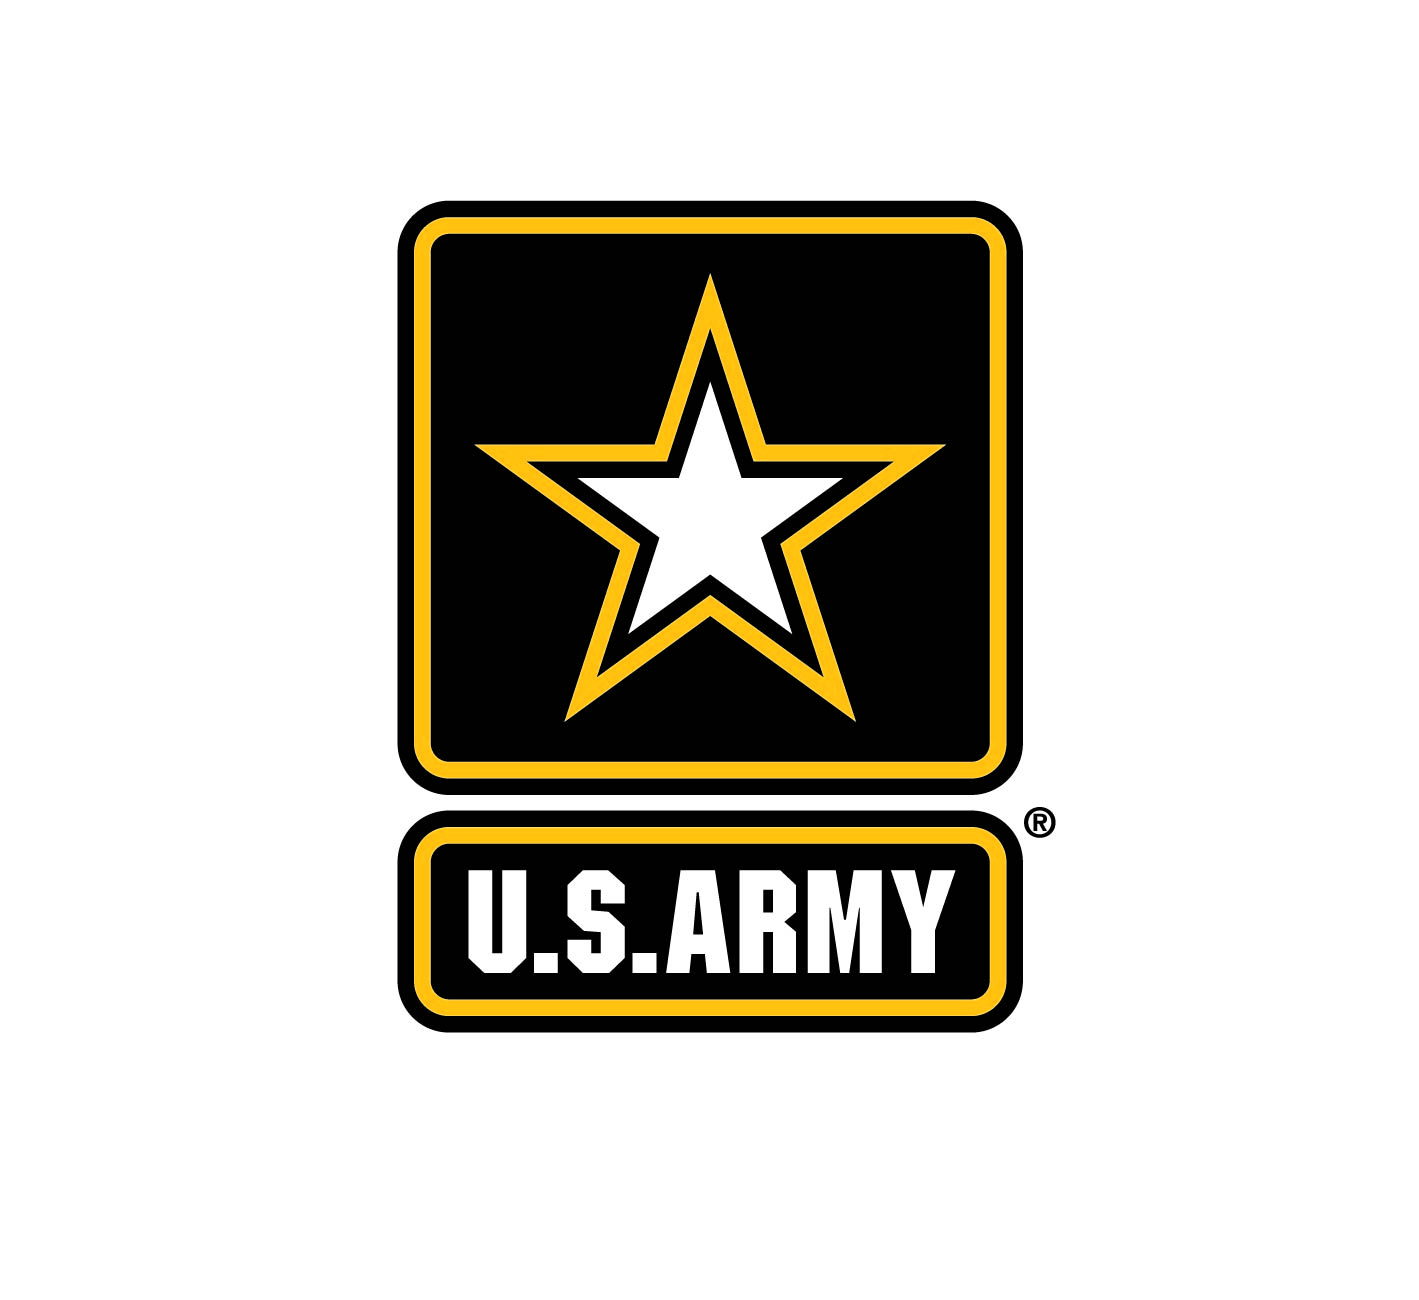 USARMY 2D 2C LE NS PS